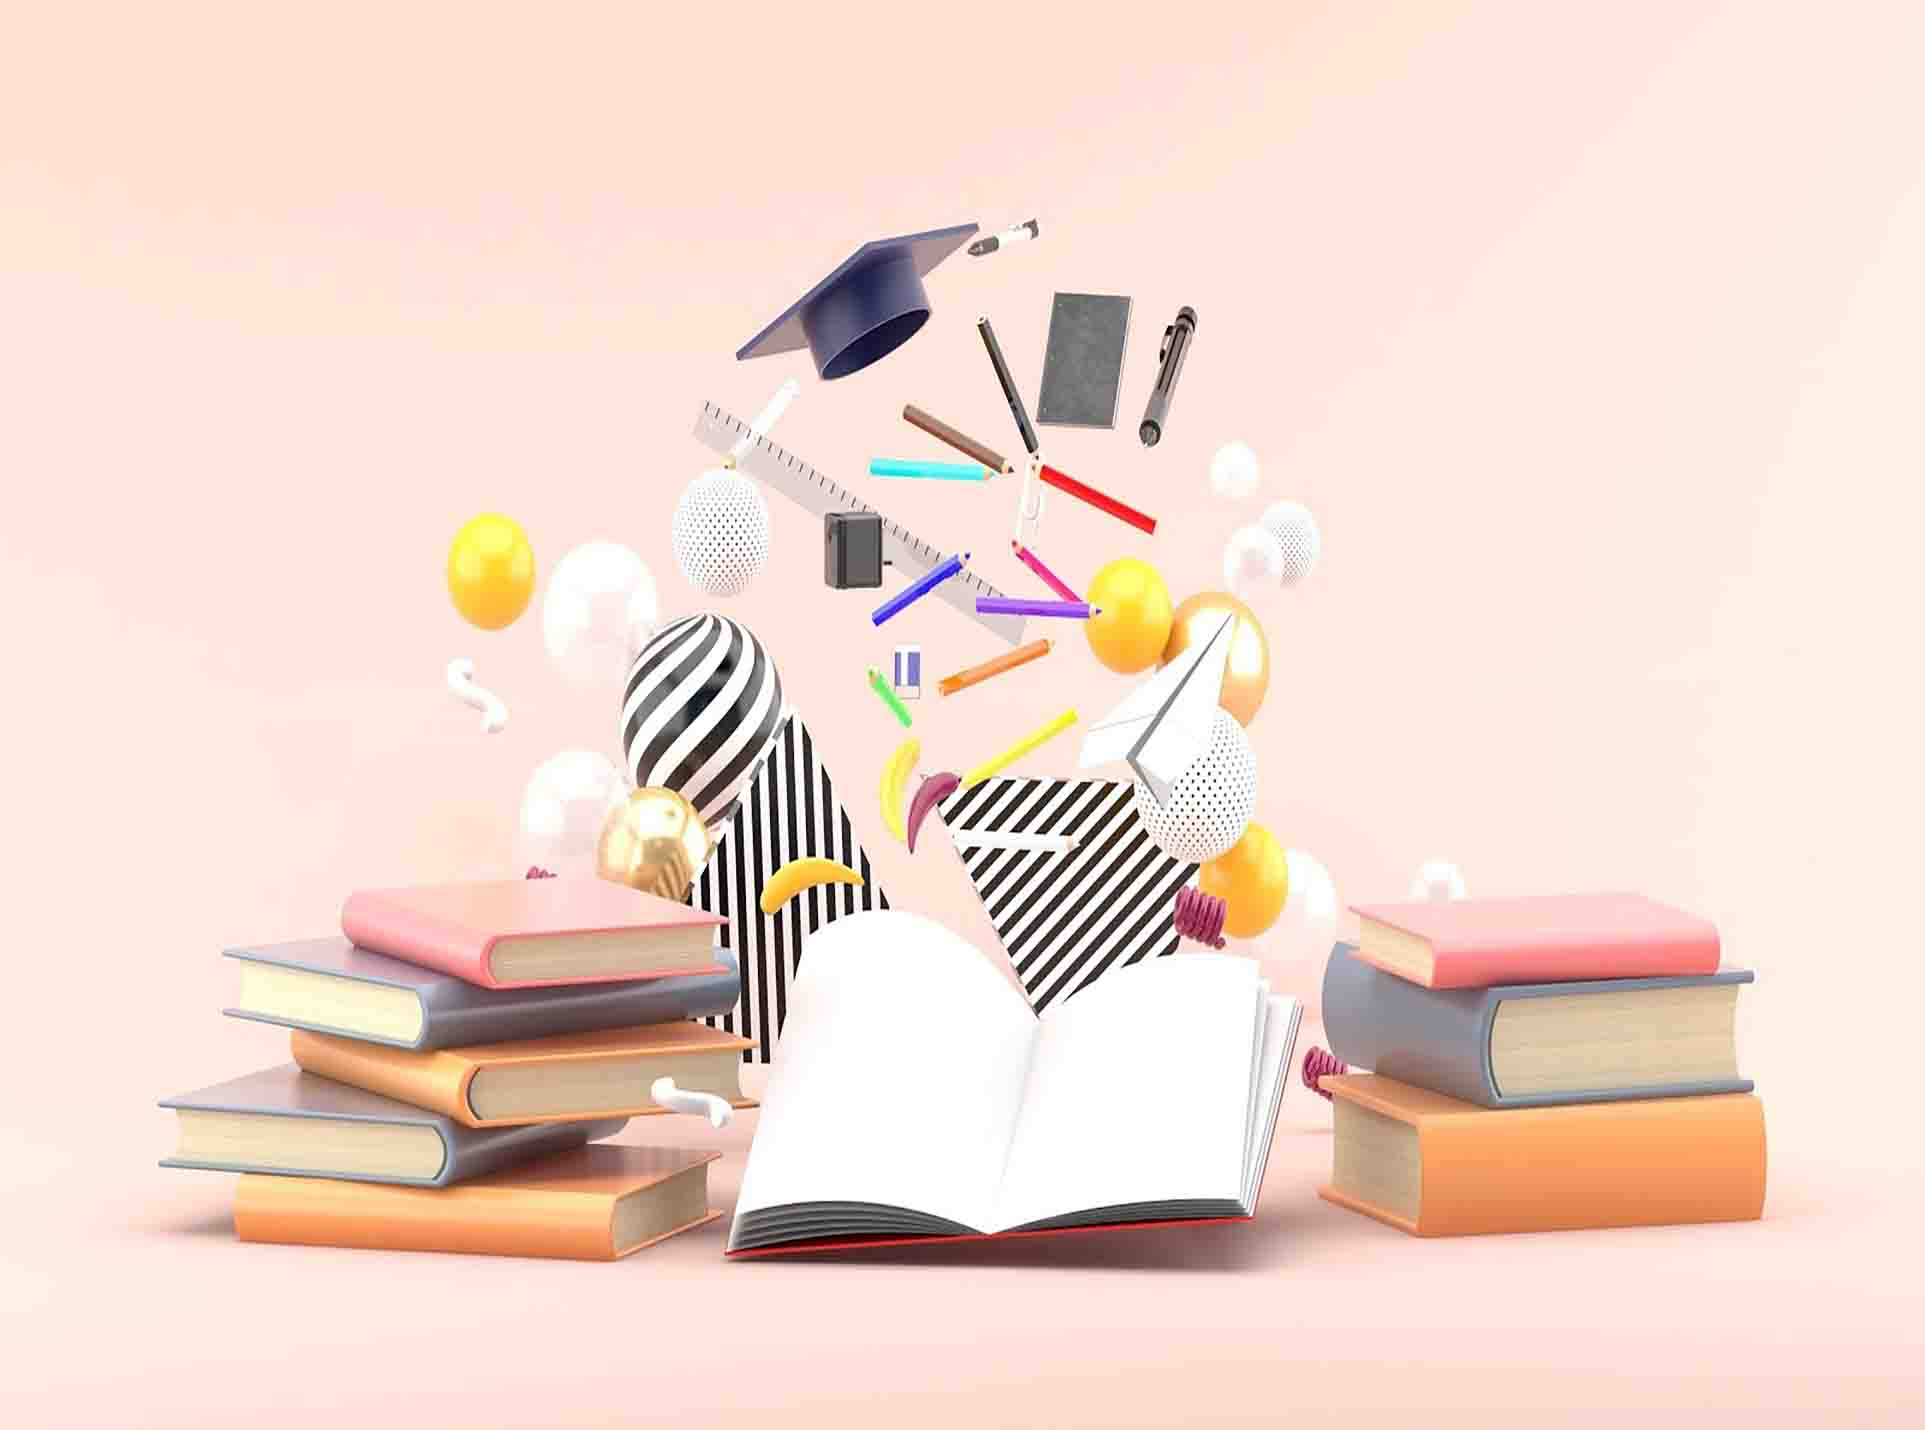 Study Tools in Pink